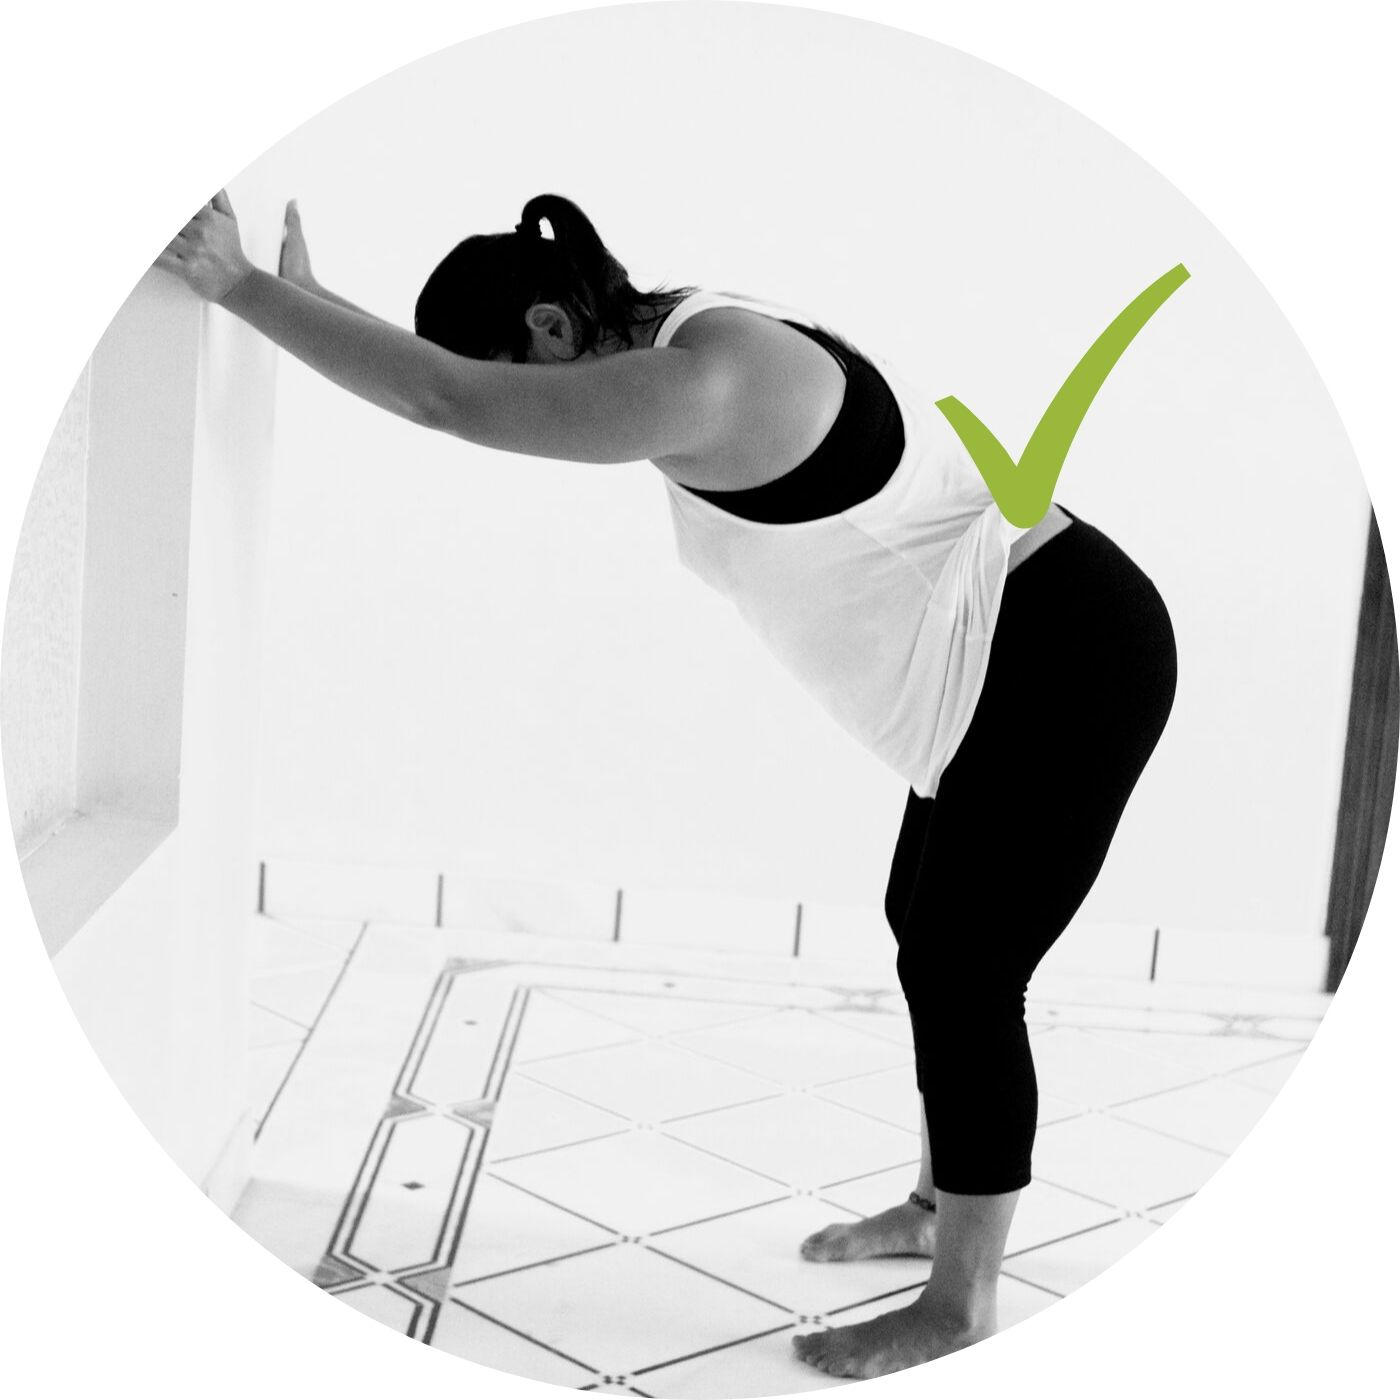 Understanding Neutral Spine at the Wall | Wall Down Dog - Checkpoints:turn hands out, elbows may bendfeet under hips, soft kneespull hips back to your thresholdthink of bringing belly and thighs progressively closer together